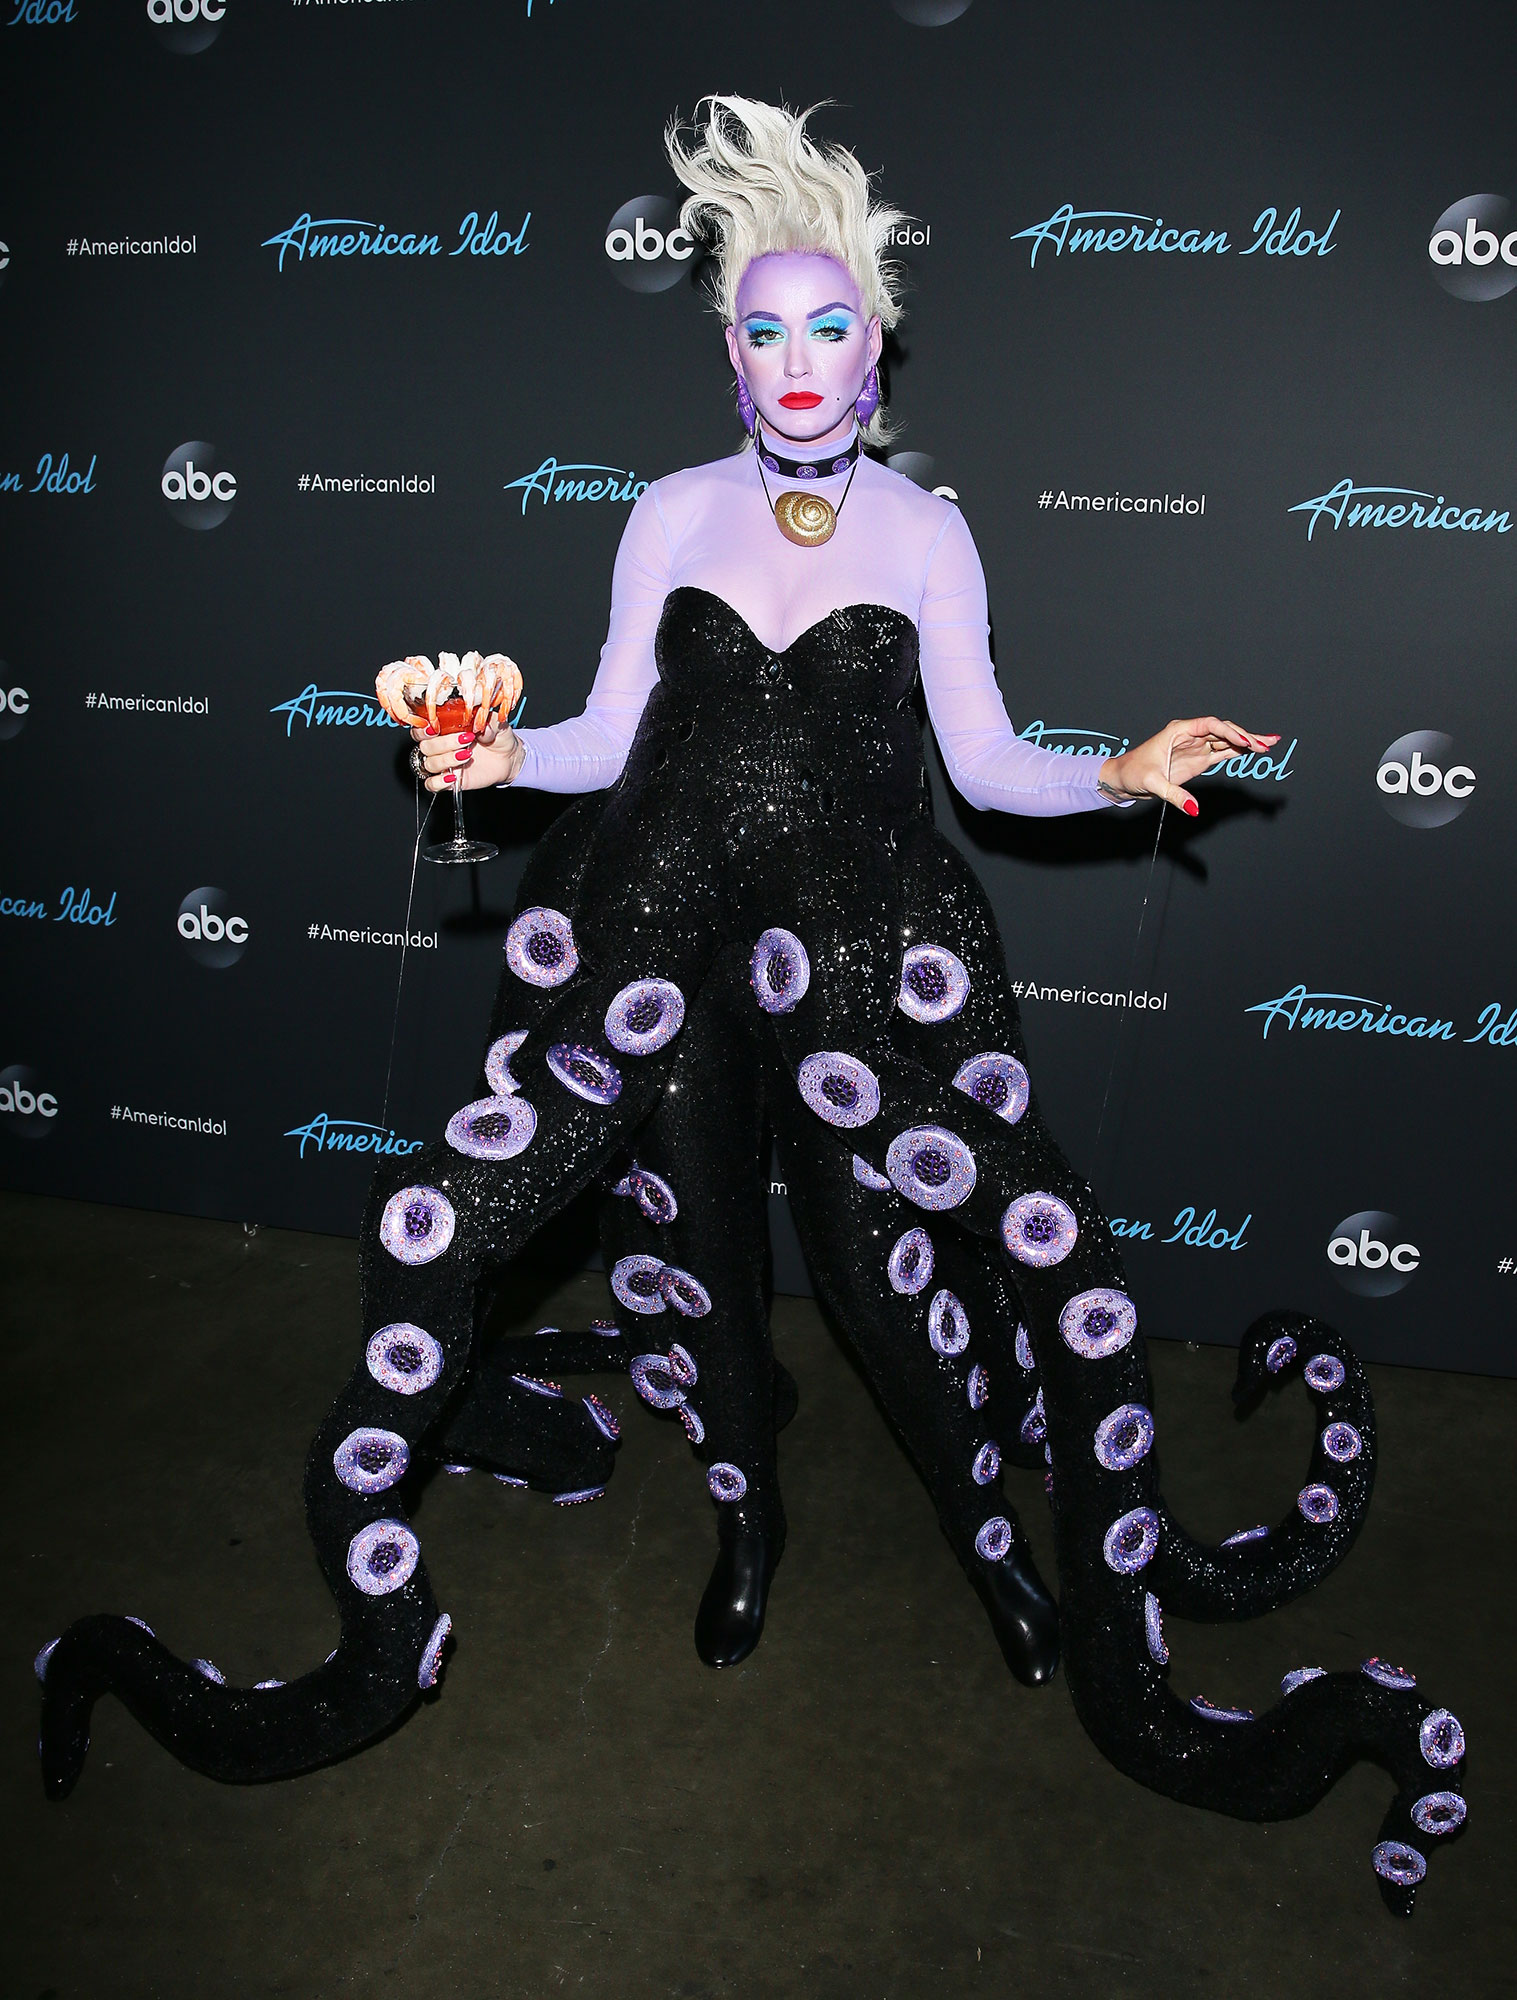 Katy Perry Wore Some of Her Wackiest Outfits Ever to the 2019 Met Gala - During American Idol's Disney-themed night, she channeled her inner villain dressing up as the Little Mermaid's Ursula.